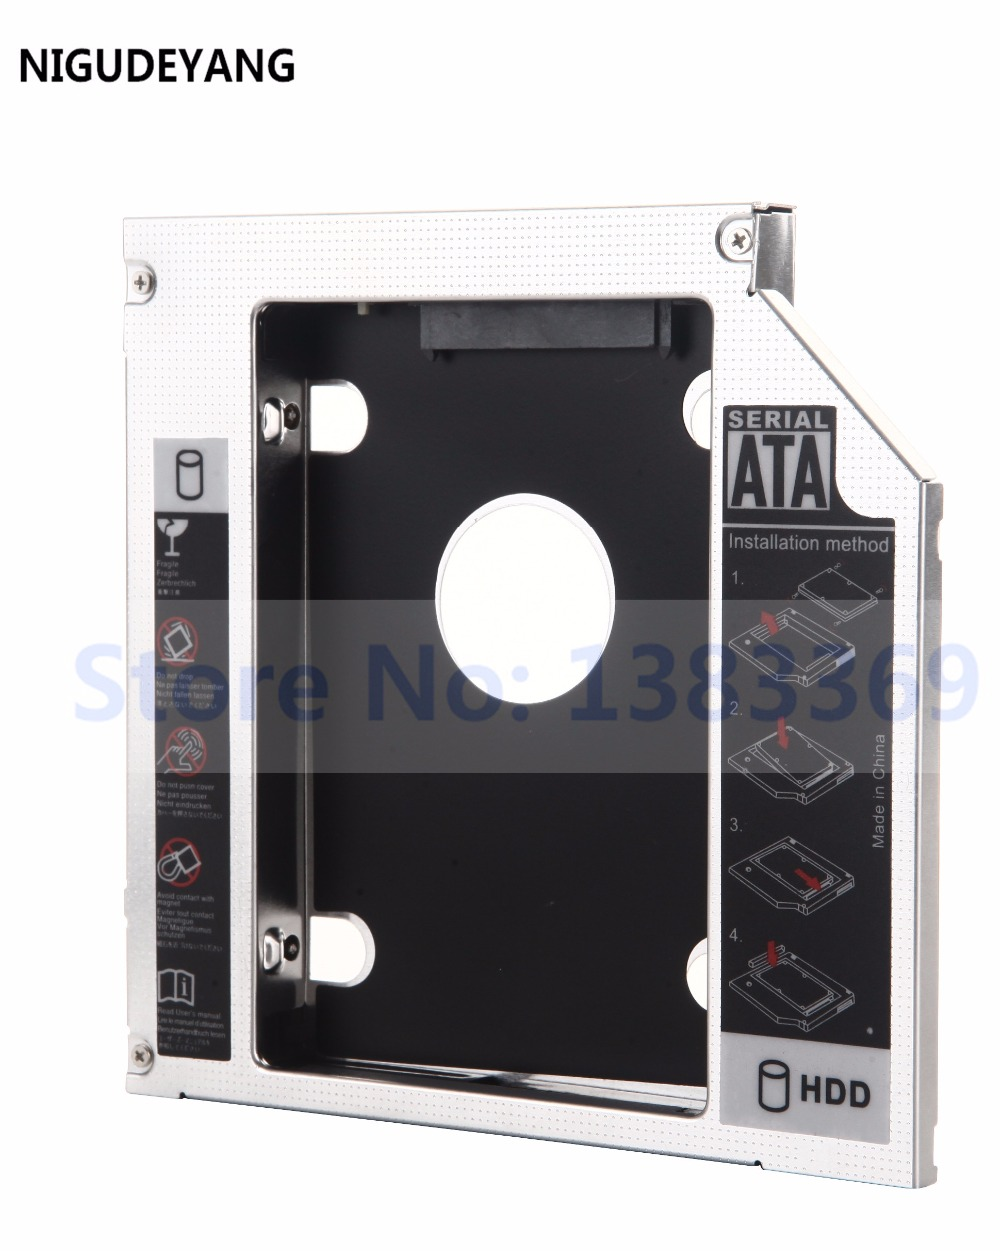 2nd Hard Drive SSD HD SATA Caddy Adapter for Acer Aspire 7730 7730G 7730Z 7730ZG